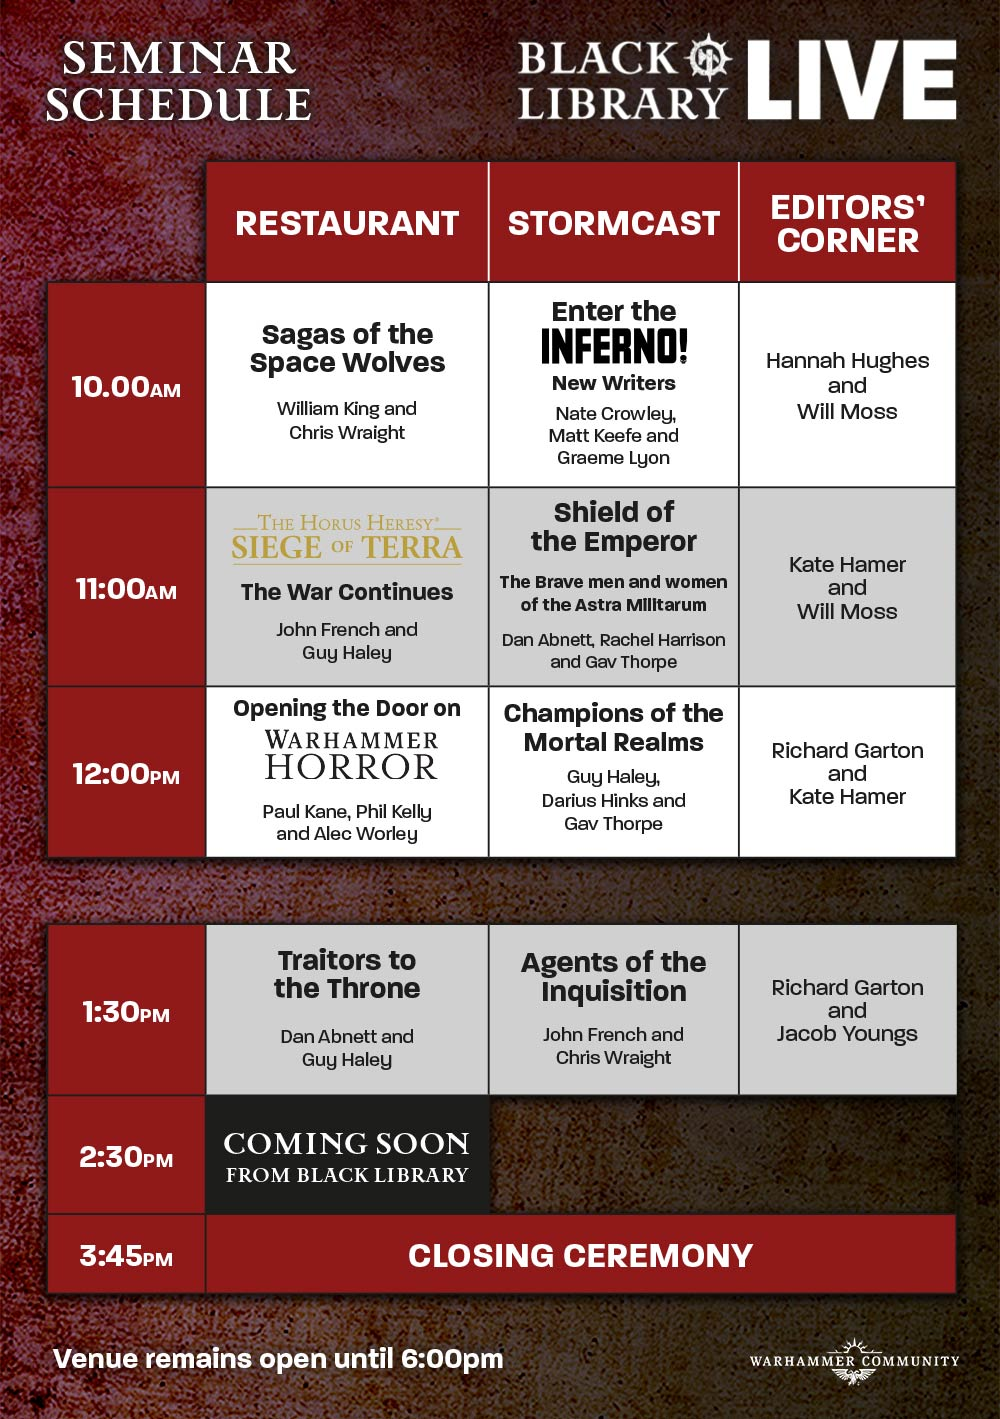 Programme des publications The Black Library 2019 - UK - Page 3 BlLive-May12-Schedule20yhcde